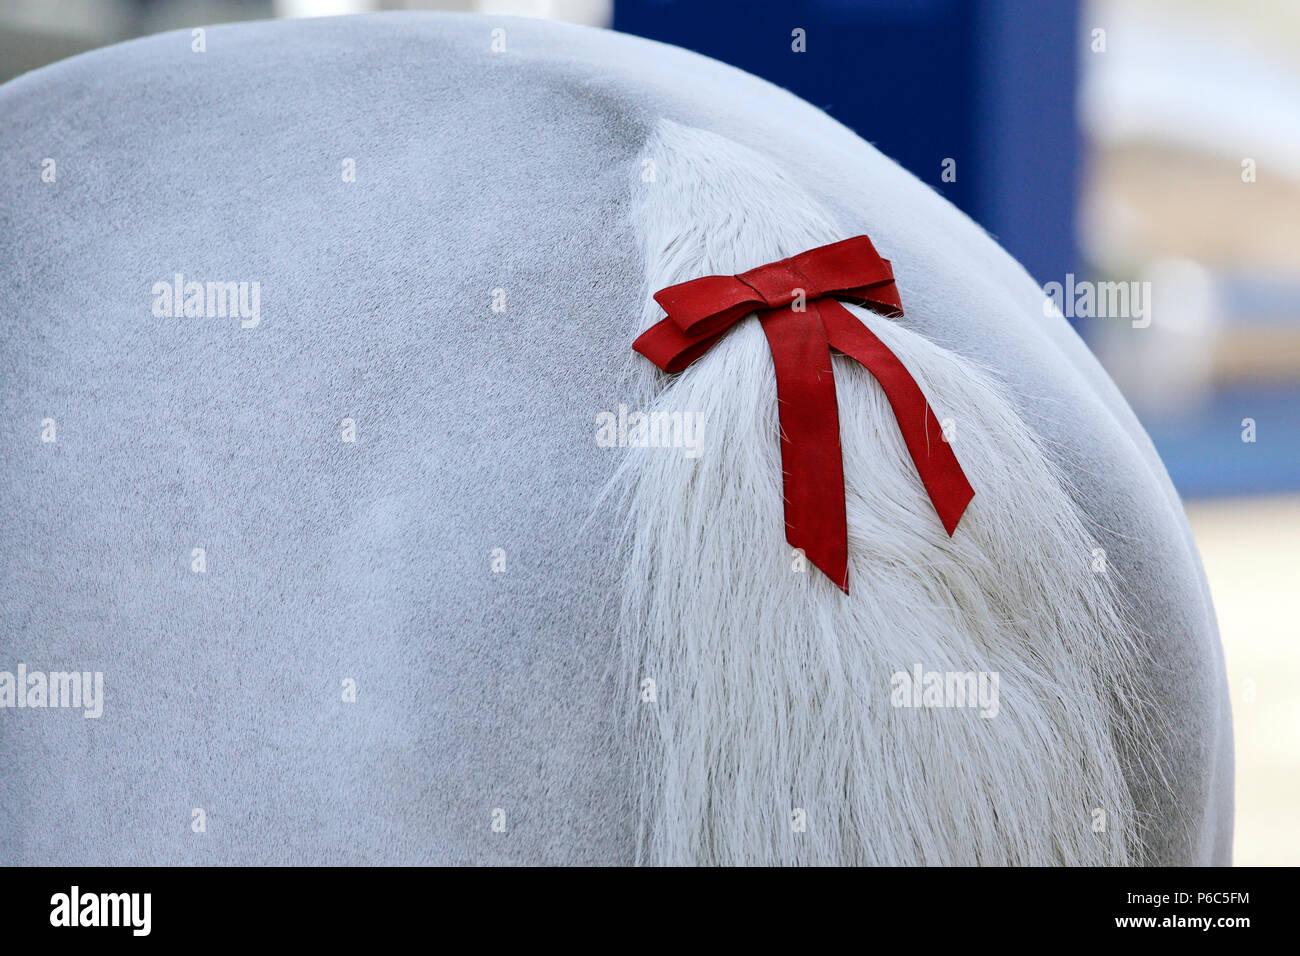 Doha, red bow in the tail of a horse - Stock Image